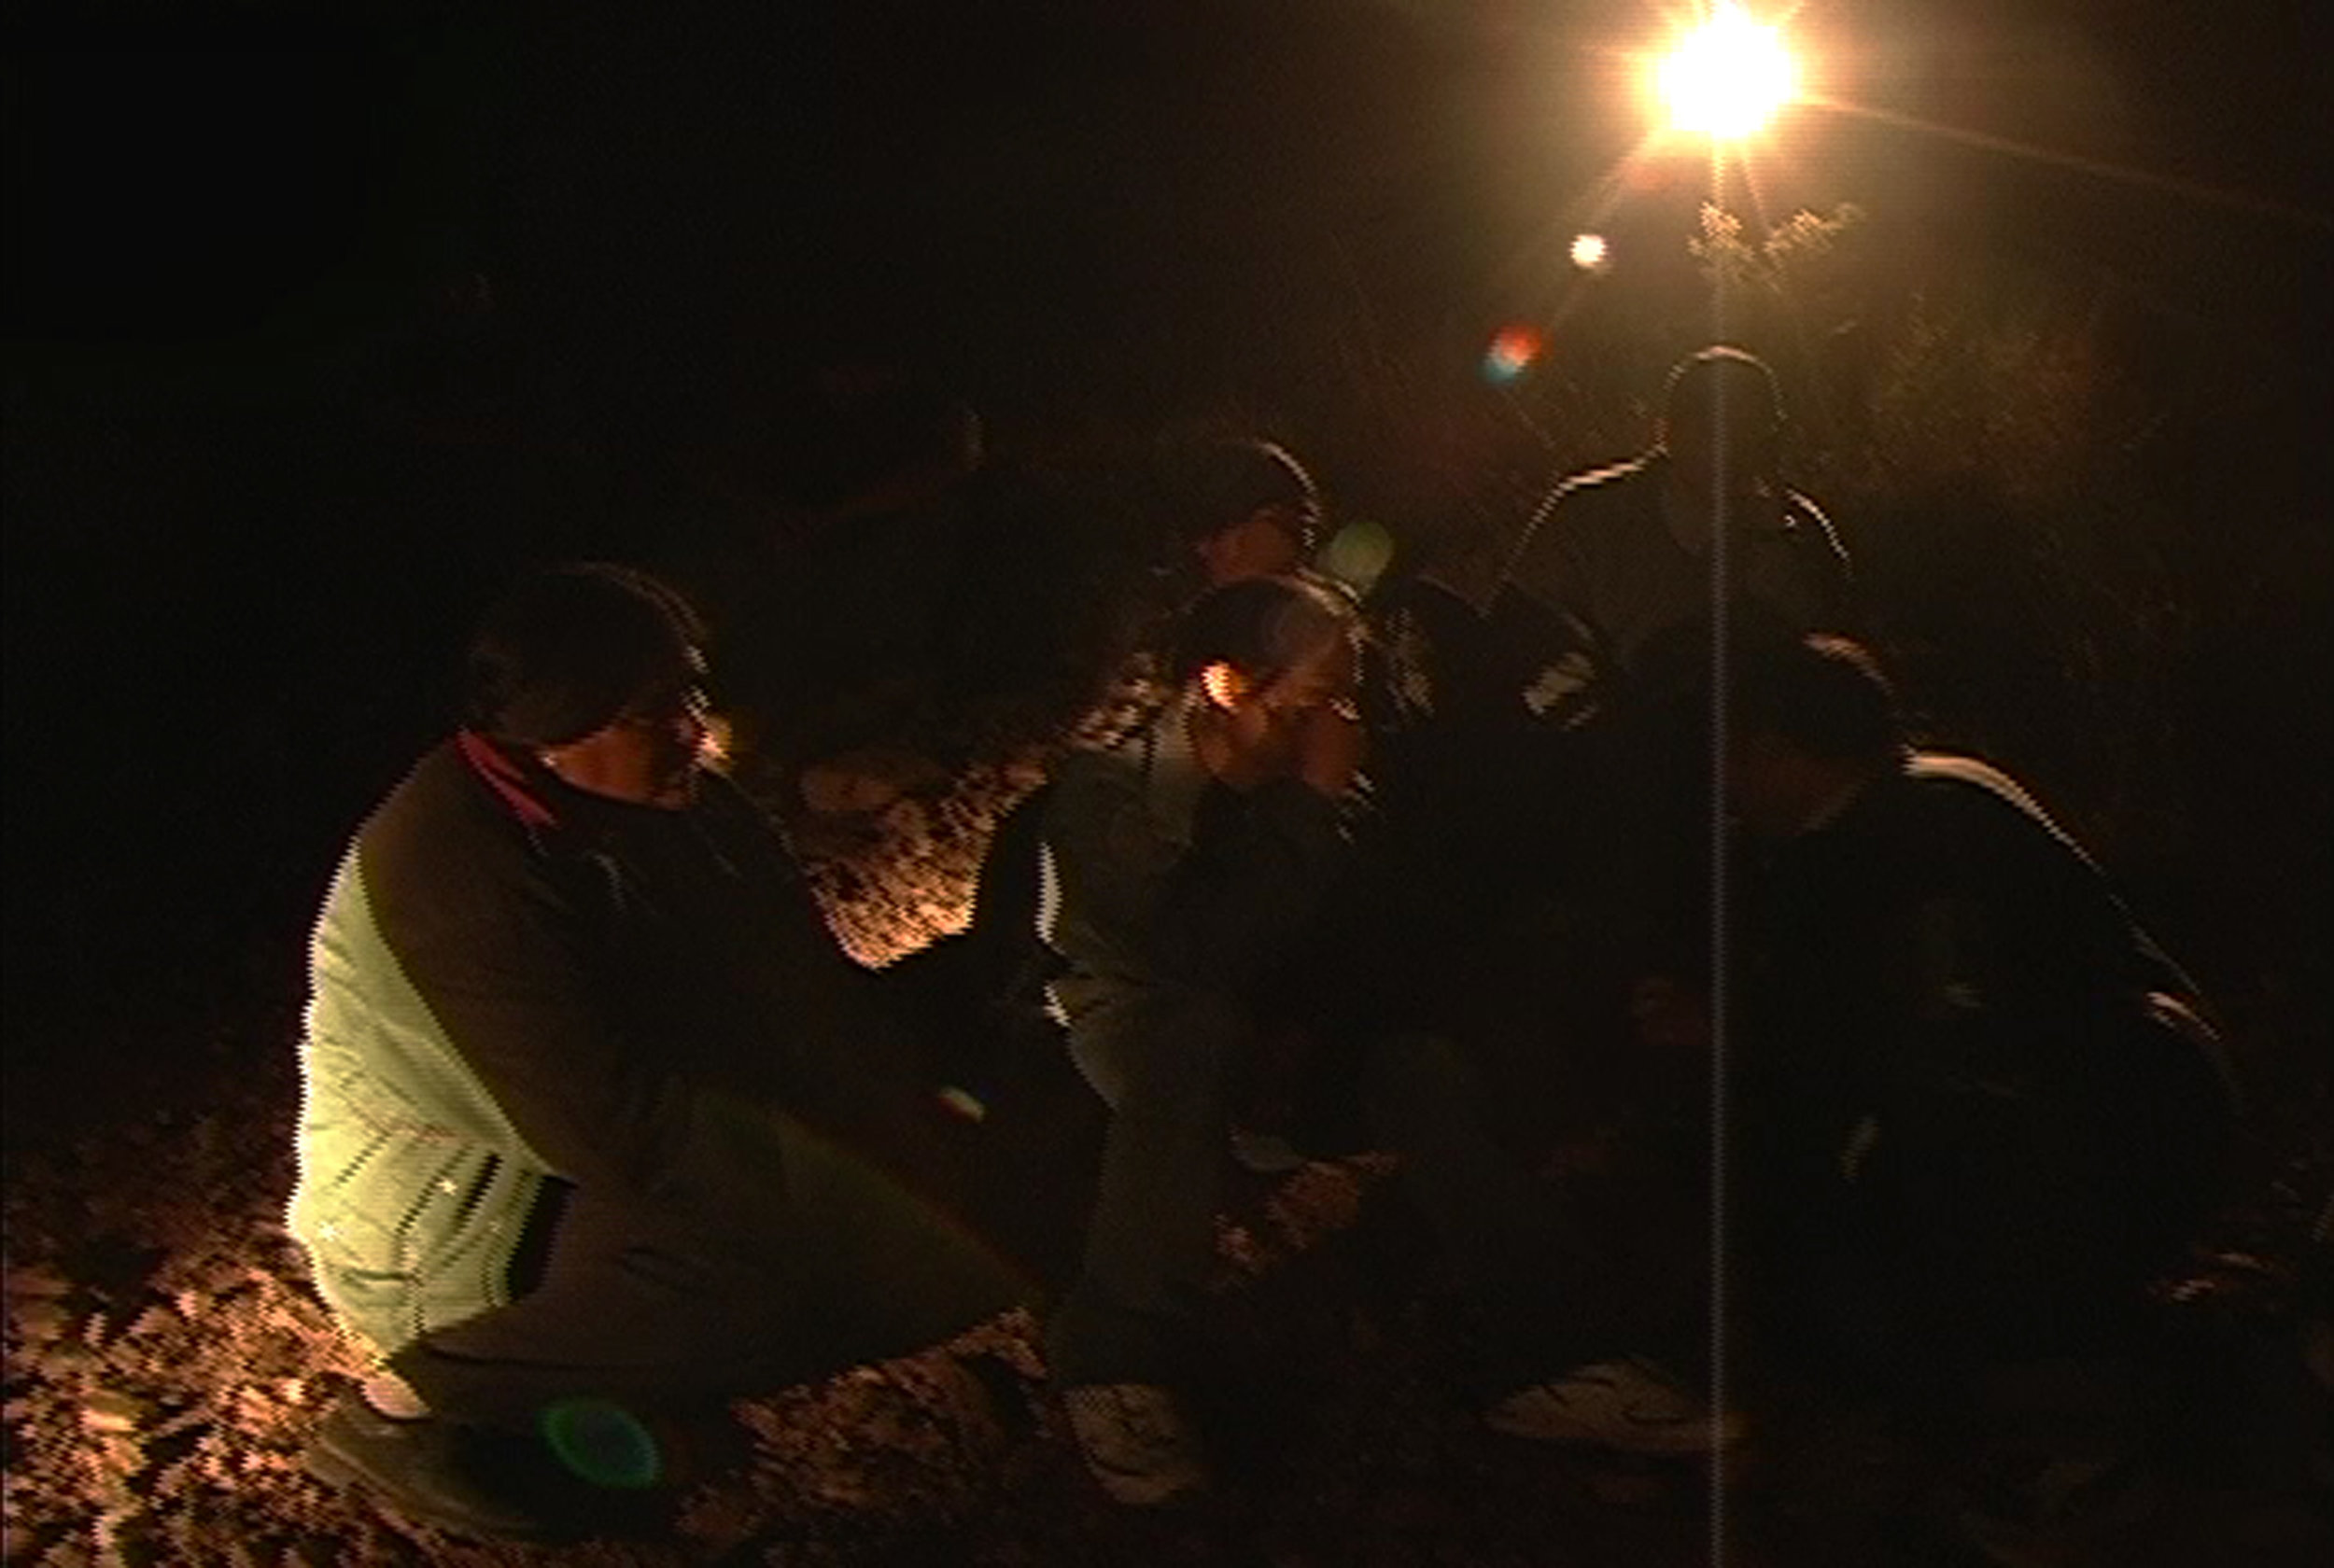 migrants in flashlights1.jpg